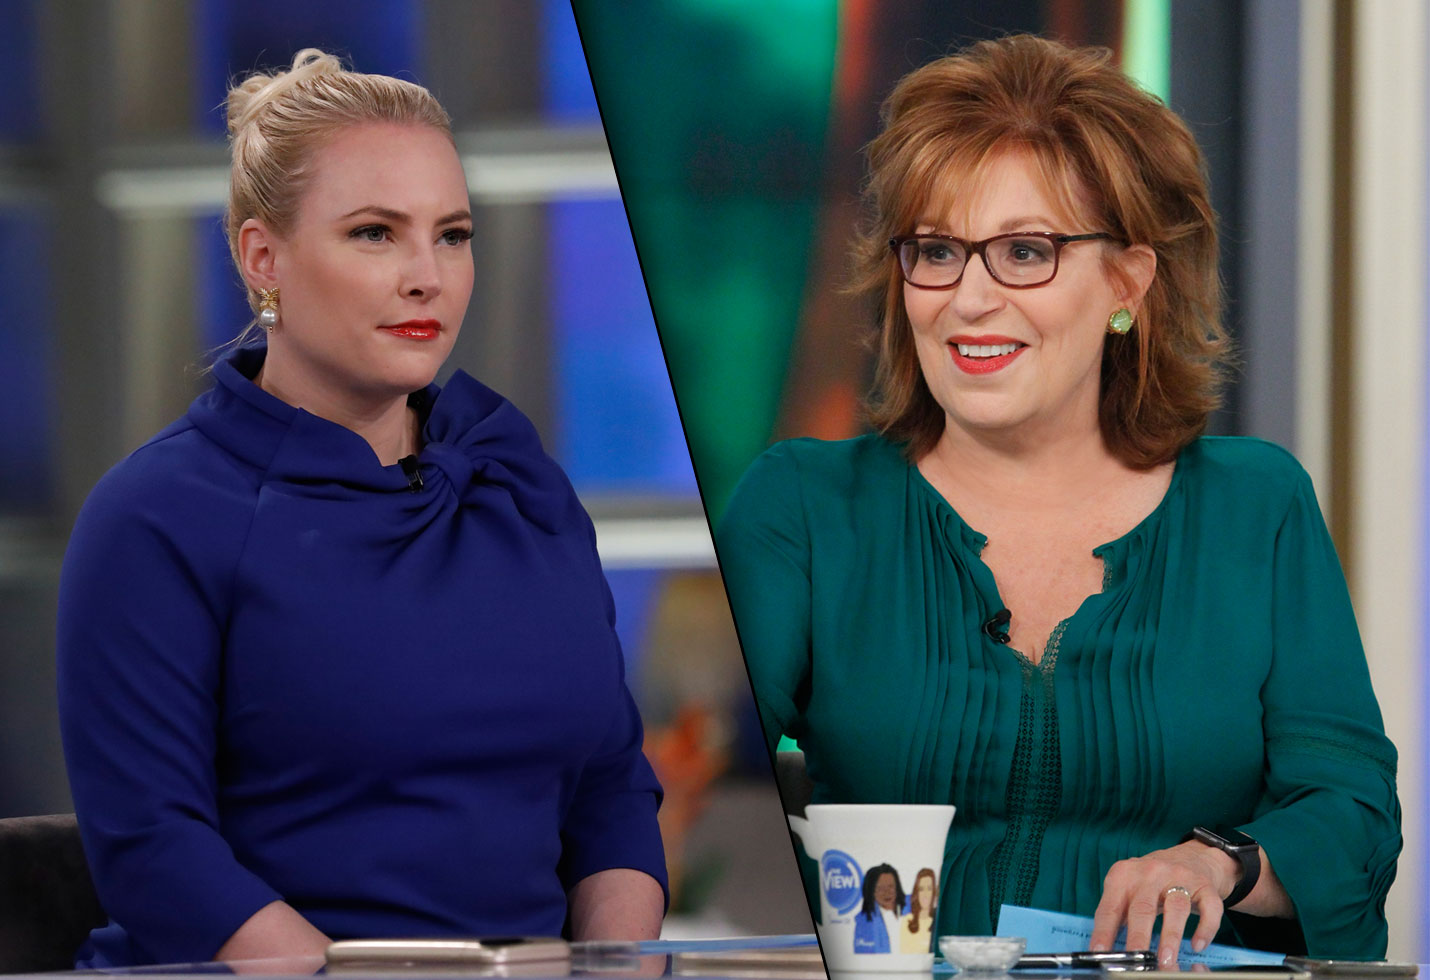 joy and megan argue on the view today